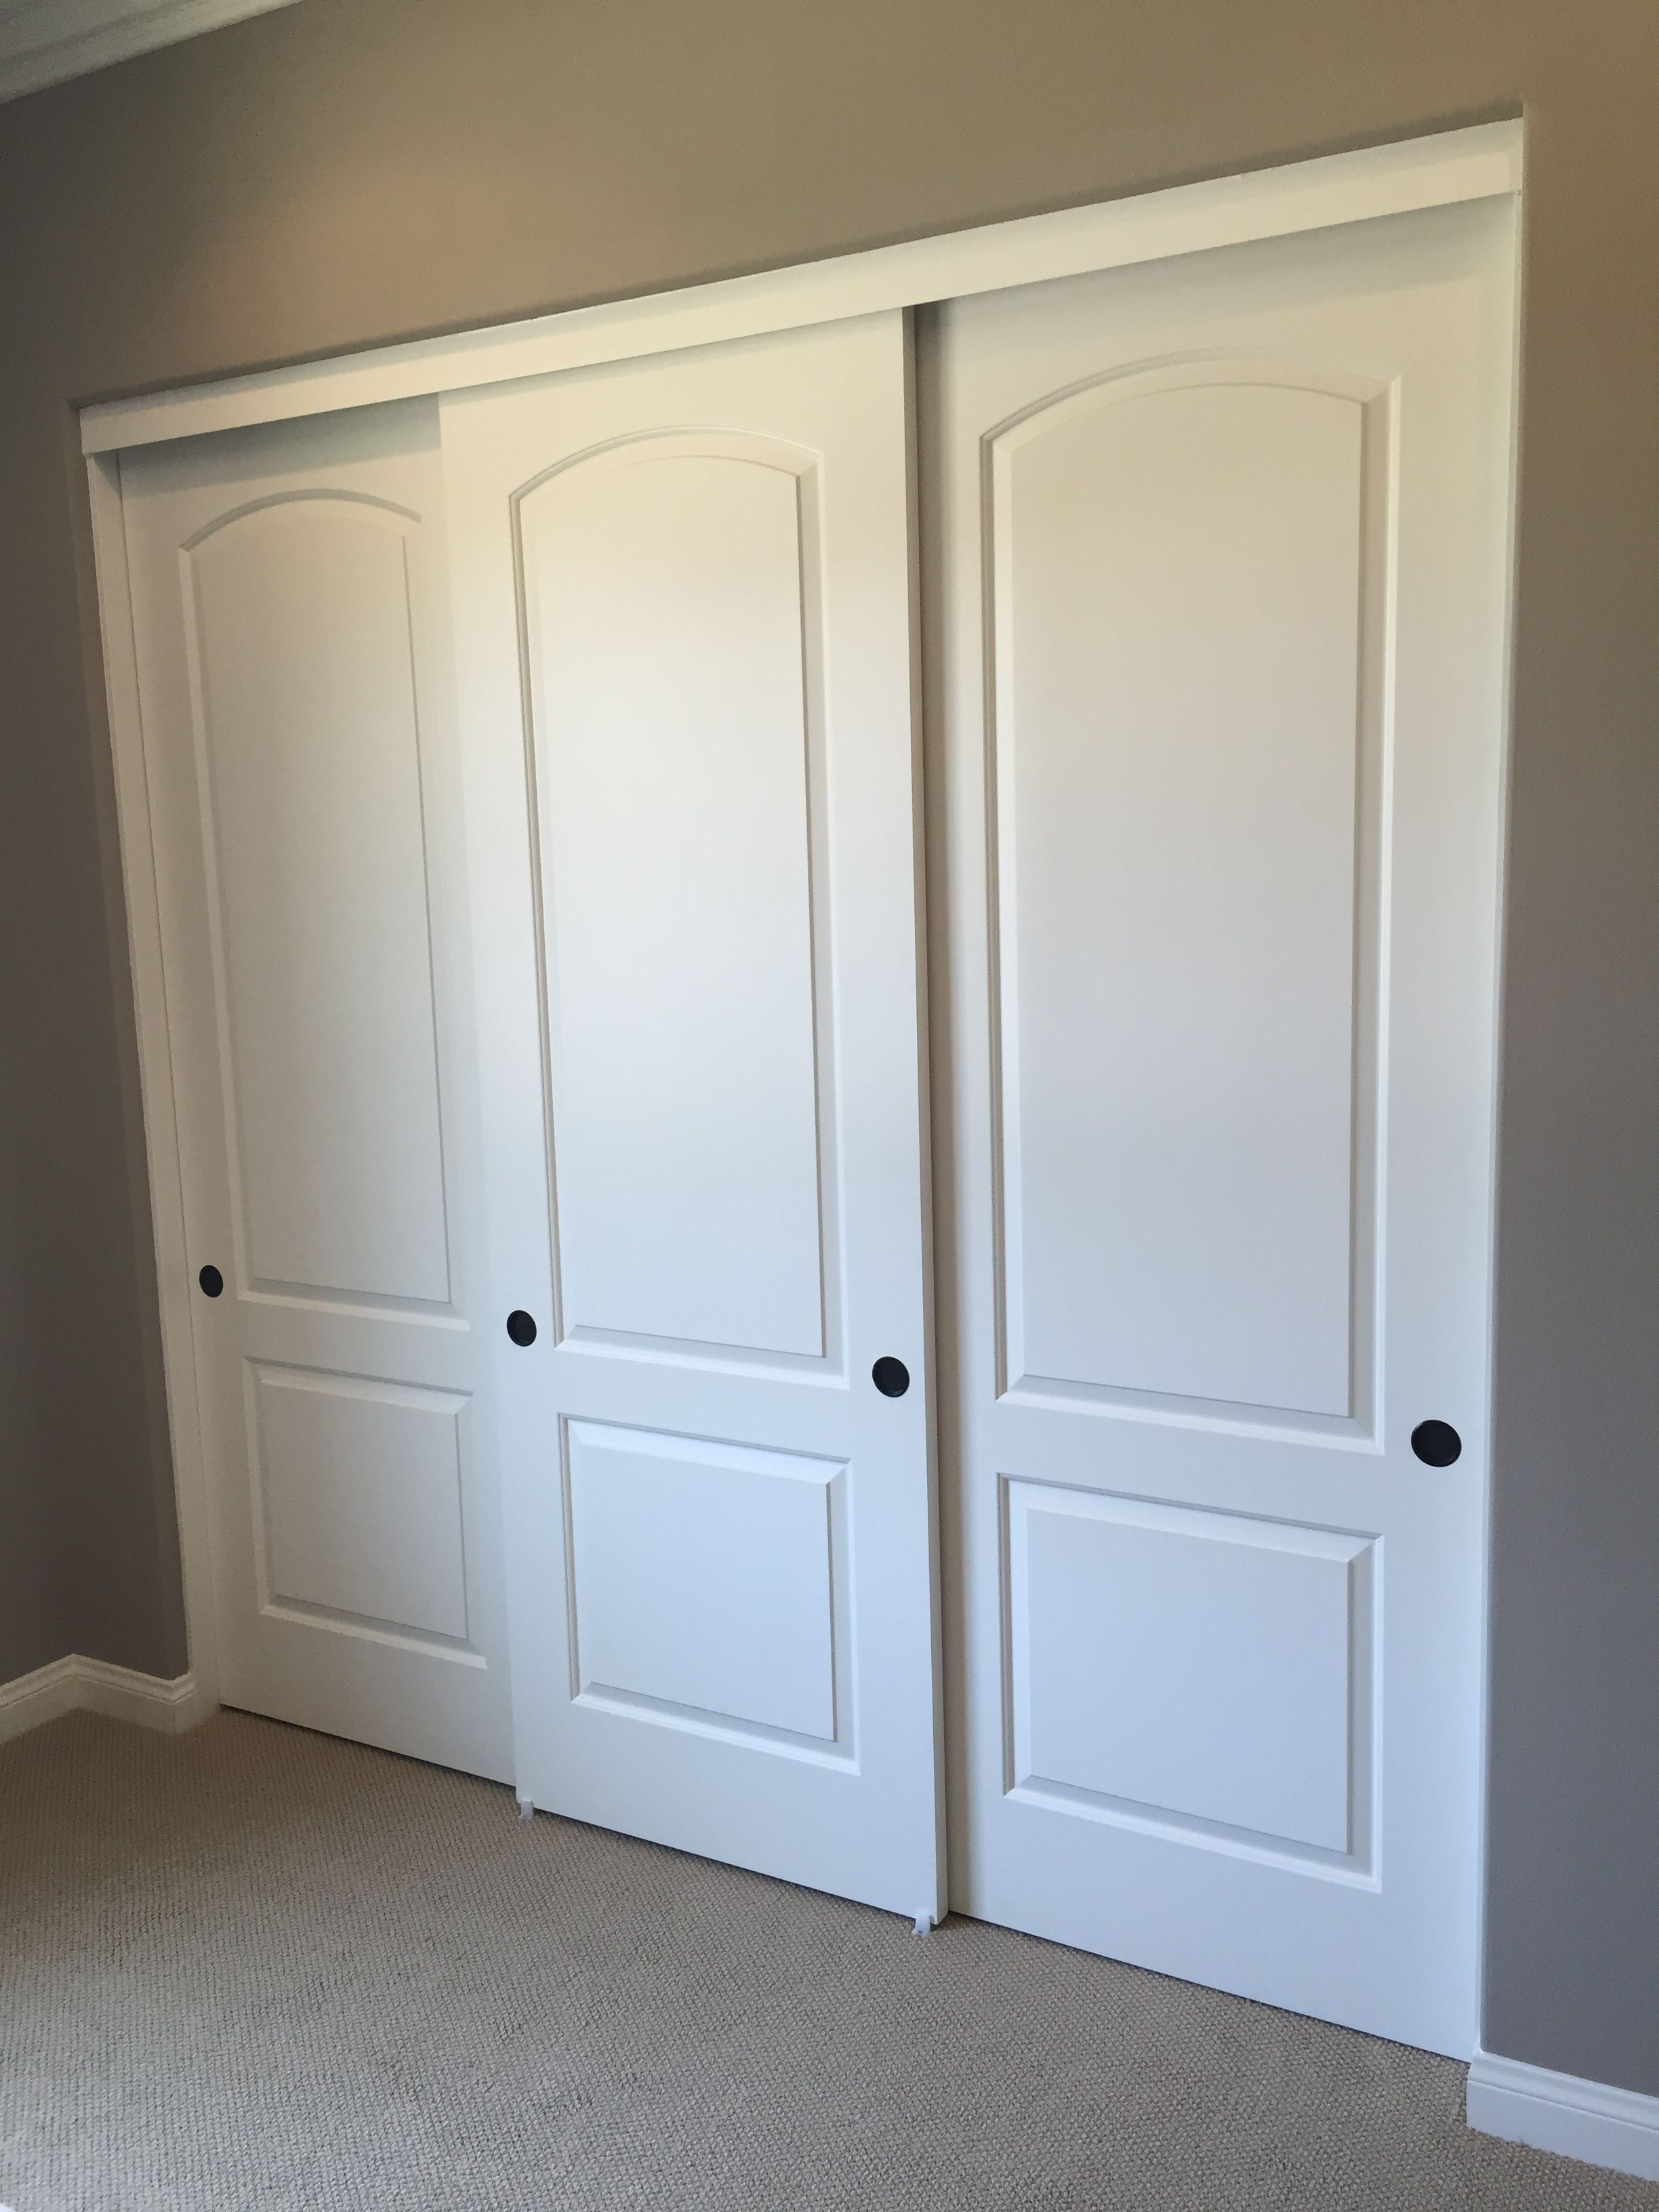 Sliding (Bypass) Closet Doors Of Southern California. Are You Looking For  Hollow Core Or Solid Core Molded Panel Closet Doors For Your Bedroom,  Office, ...